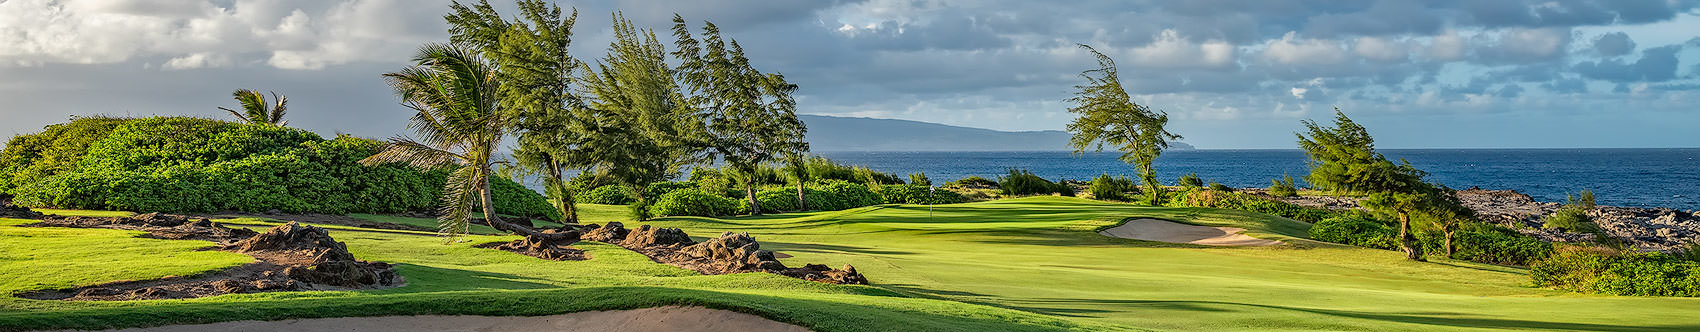 <div class='title'>           4TH HOLE, KAPALUA'S BAY COURSE         </div>                 <div class='description'>           My favorite shot from a Fall 2015 shoot at Kapalua's Bay Course, on Maui         </div>